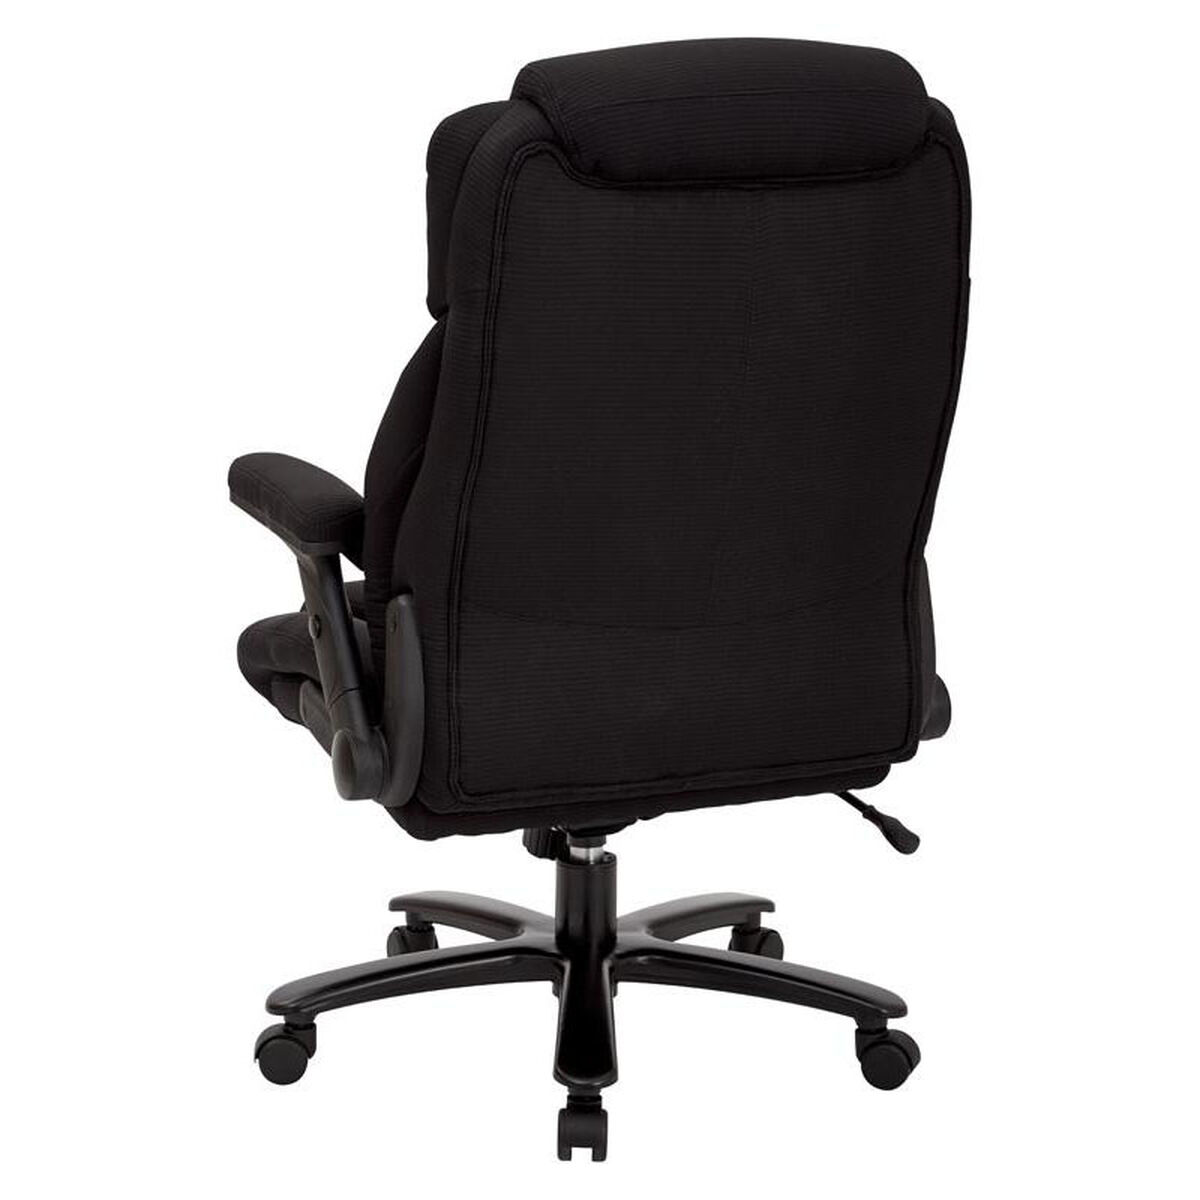 Our Pro Line Ii And Tall Deluxe High Back Fabric Executive Office Chair With